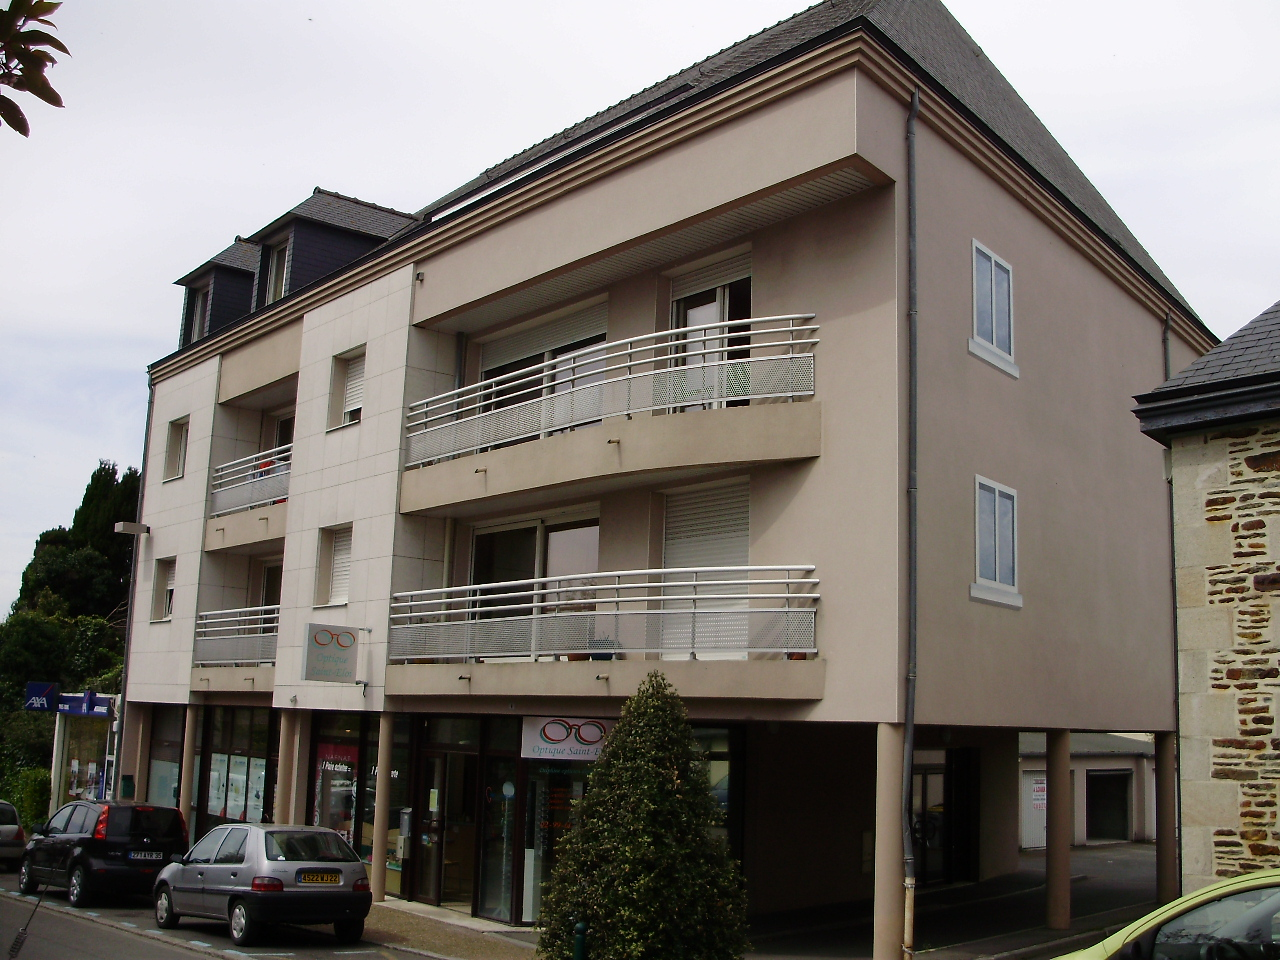 Location appartement montauban de bretagne centre ville 2pieces 34m2 span  ...